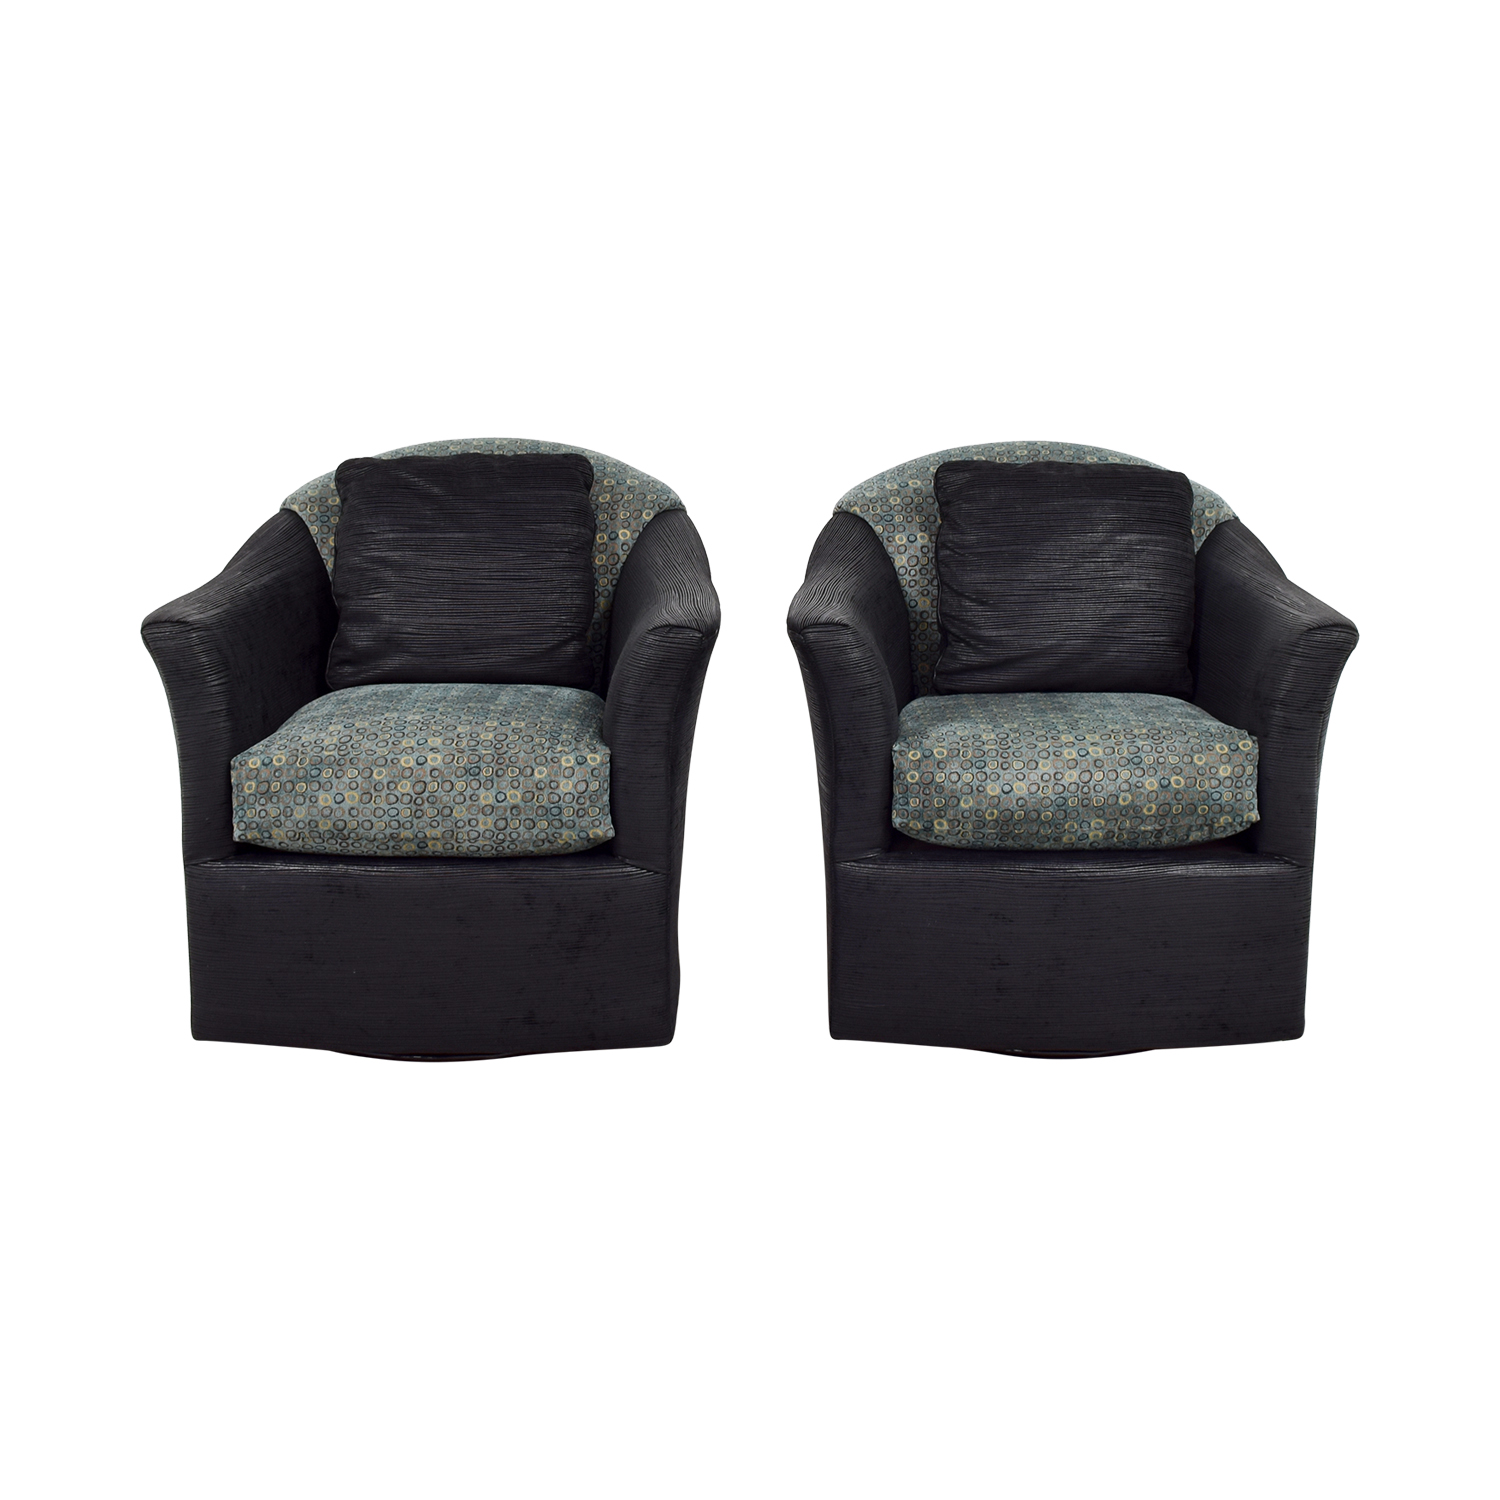 Fairfield Barrel Black Blue and Gold Accent Chairs sale